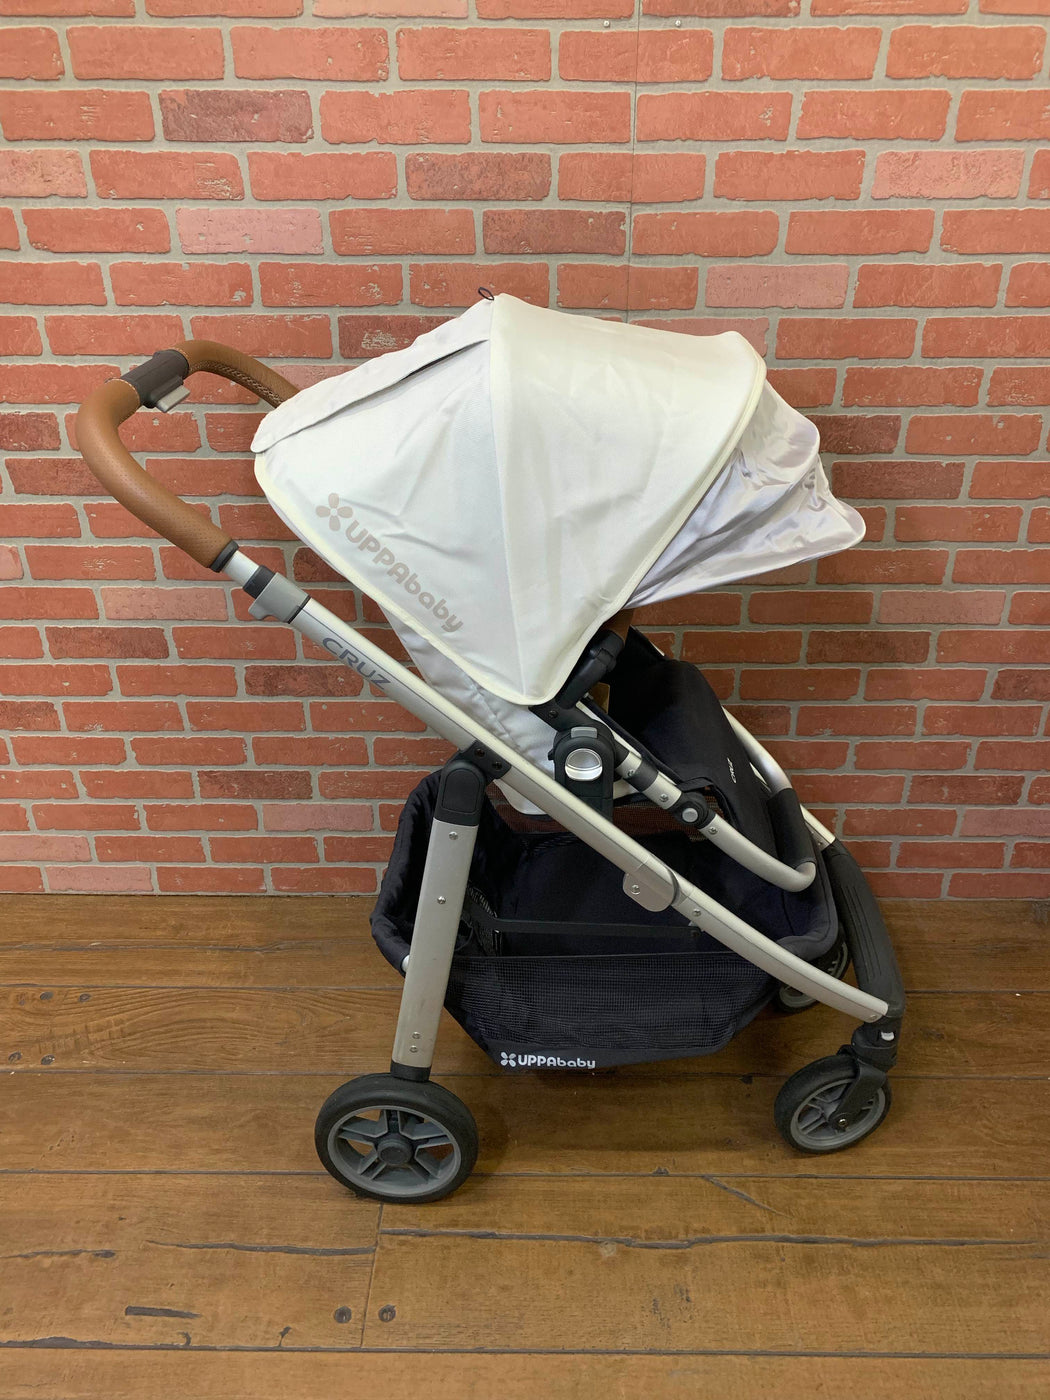 secondhand UPPAbaby CRUZ Stroller, Loic (White), 2017